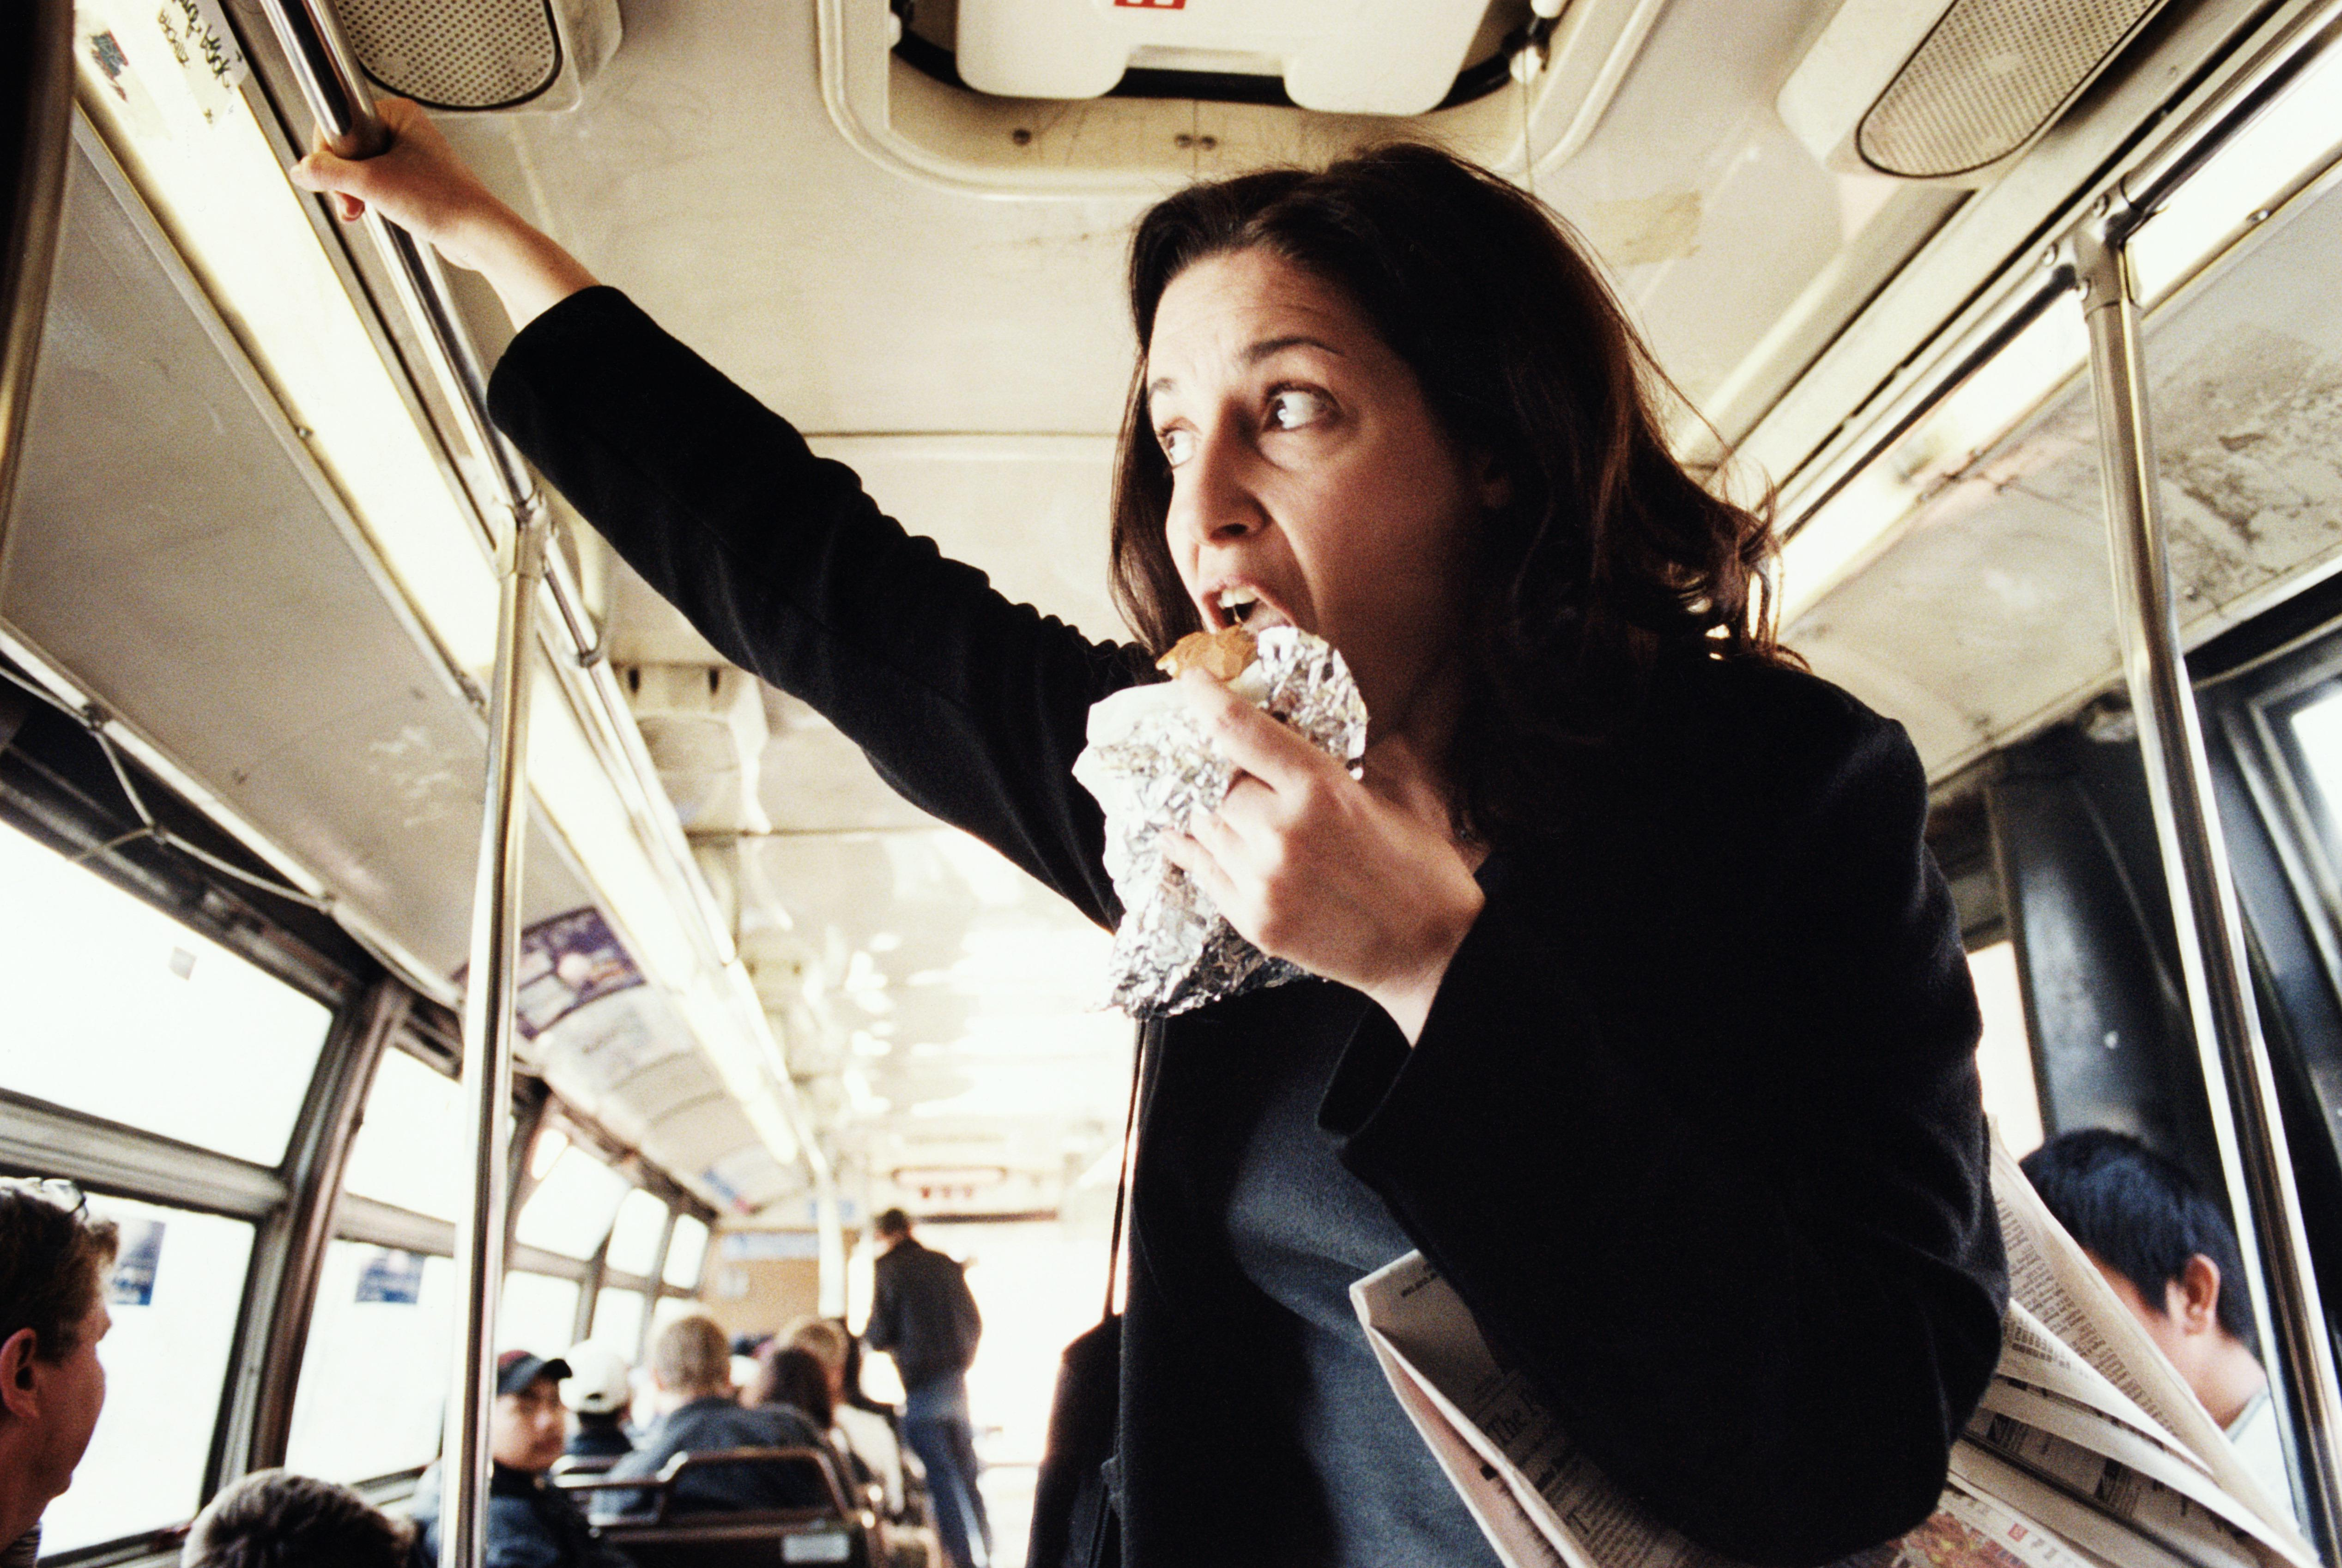 Woman eating hamburger on bus